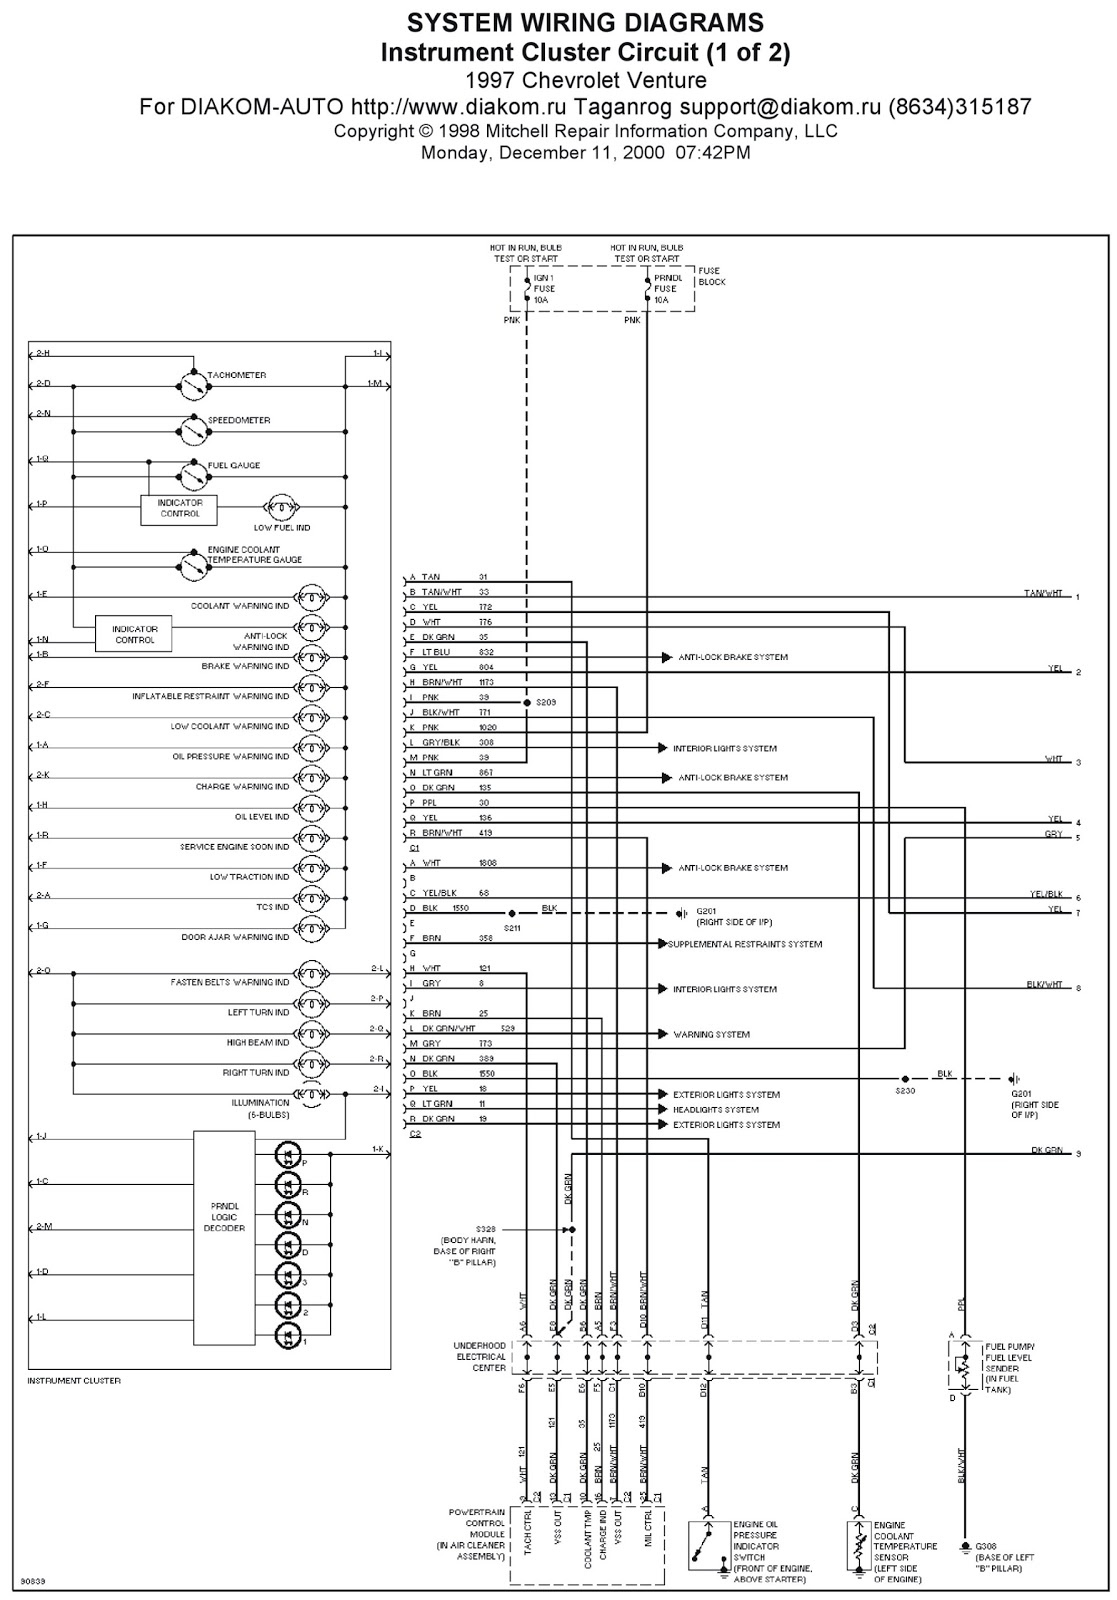 small resolution of 1997 chevrolet venture instrument cluster circuit system wiring diagram part 1in the part two you will see the parts as follow electronic brake control